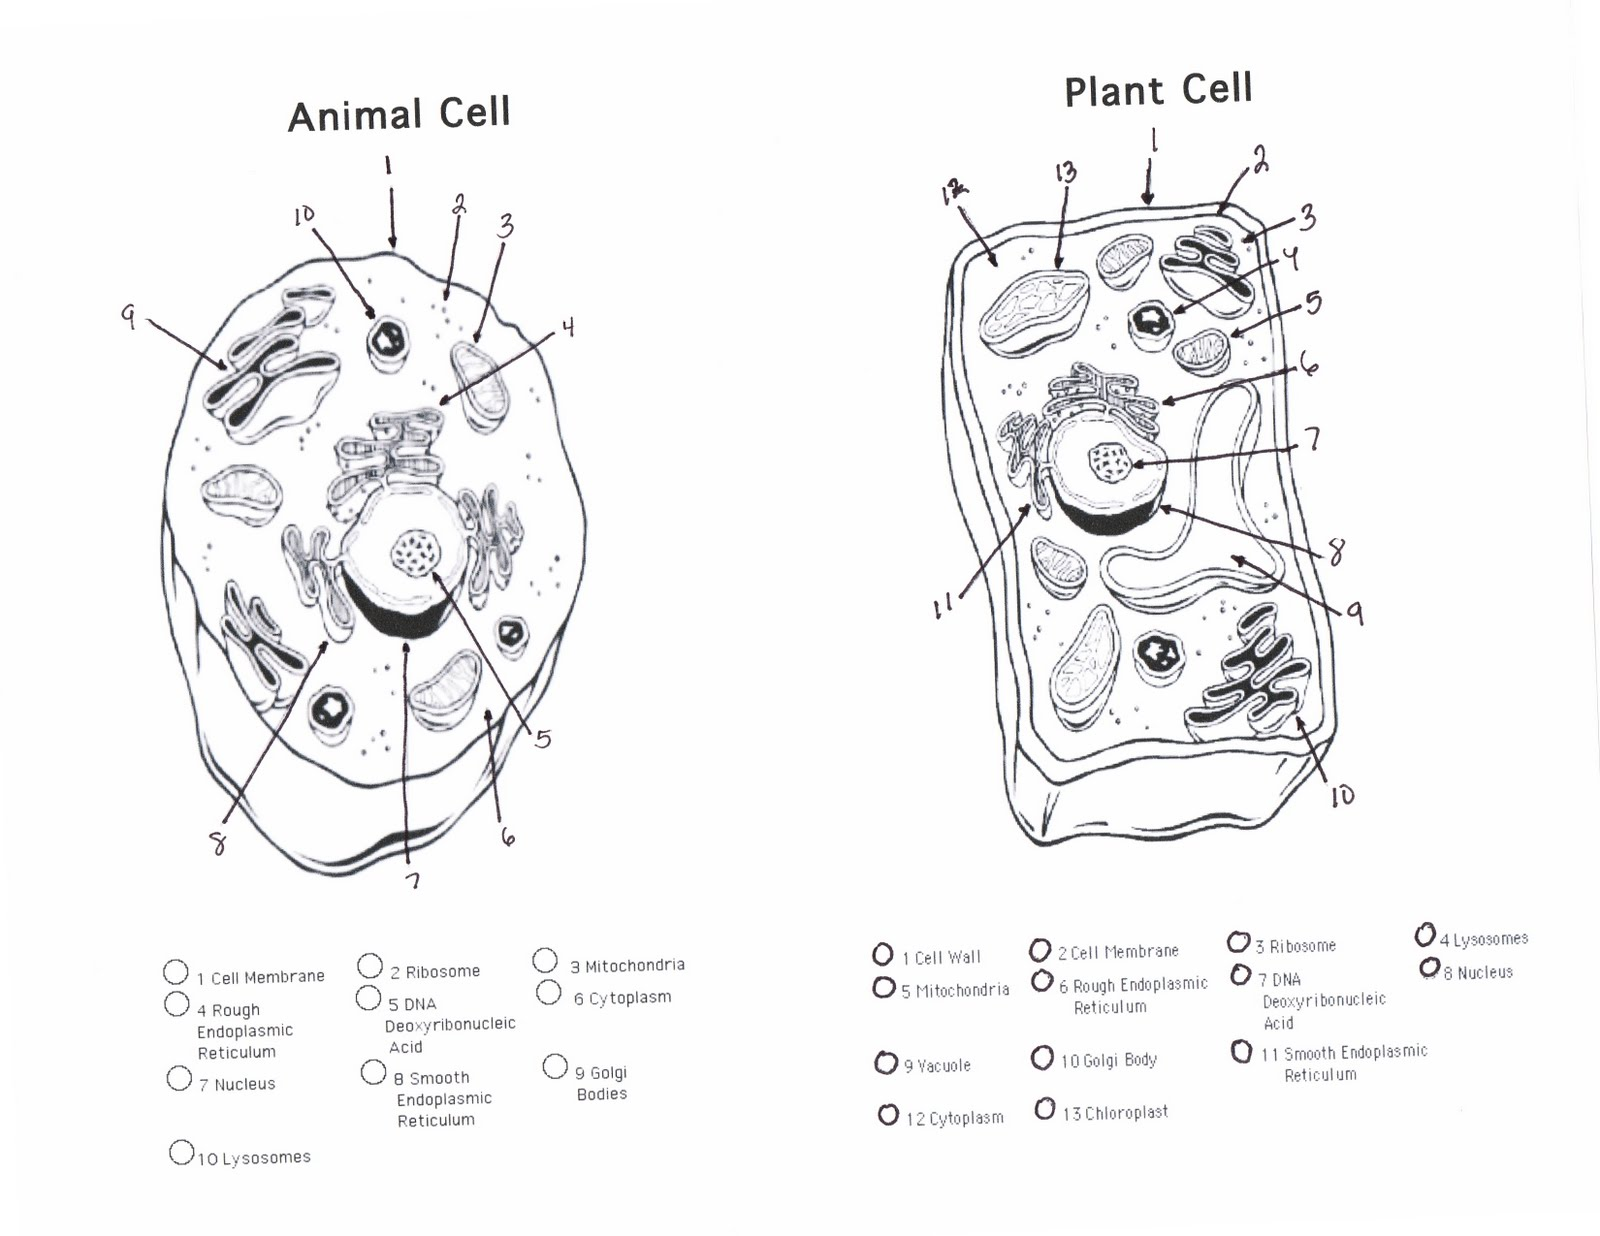 and animal cell worksheets http colorigx com cell coloring sheetsAnimal Cell Diagram Worksheet